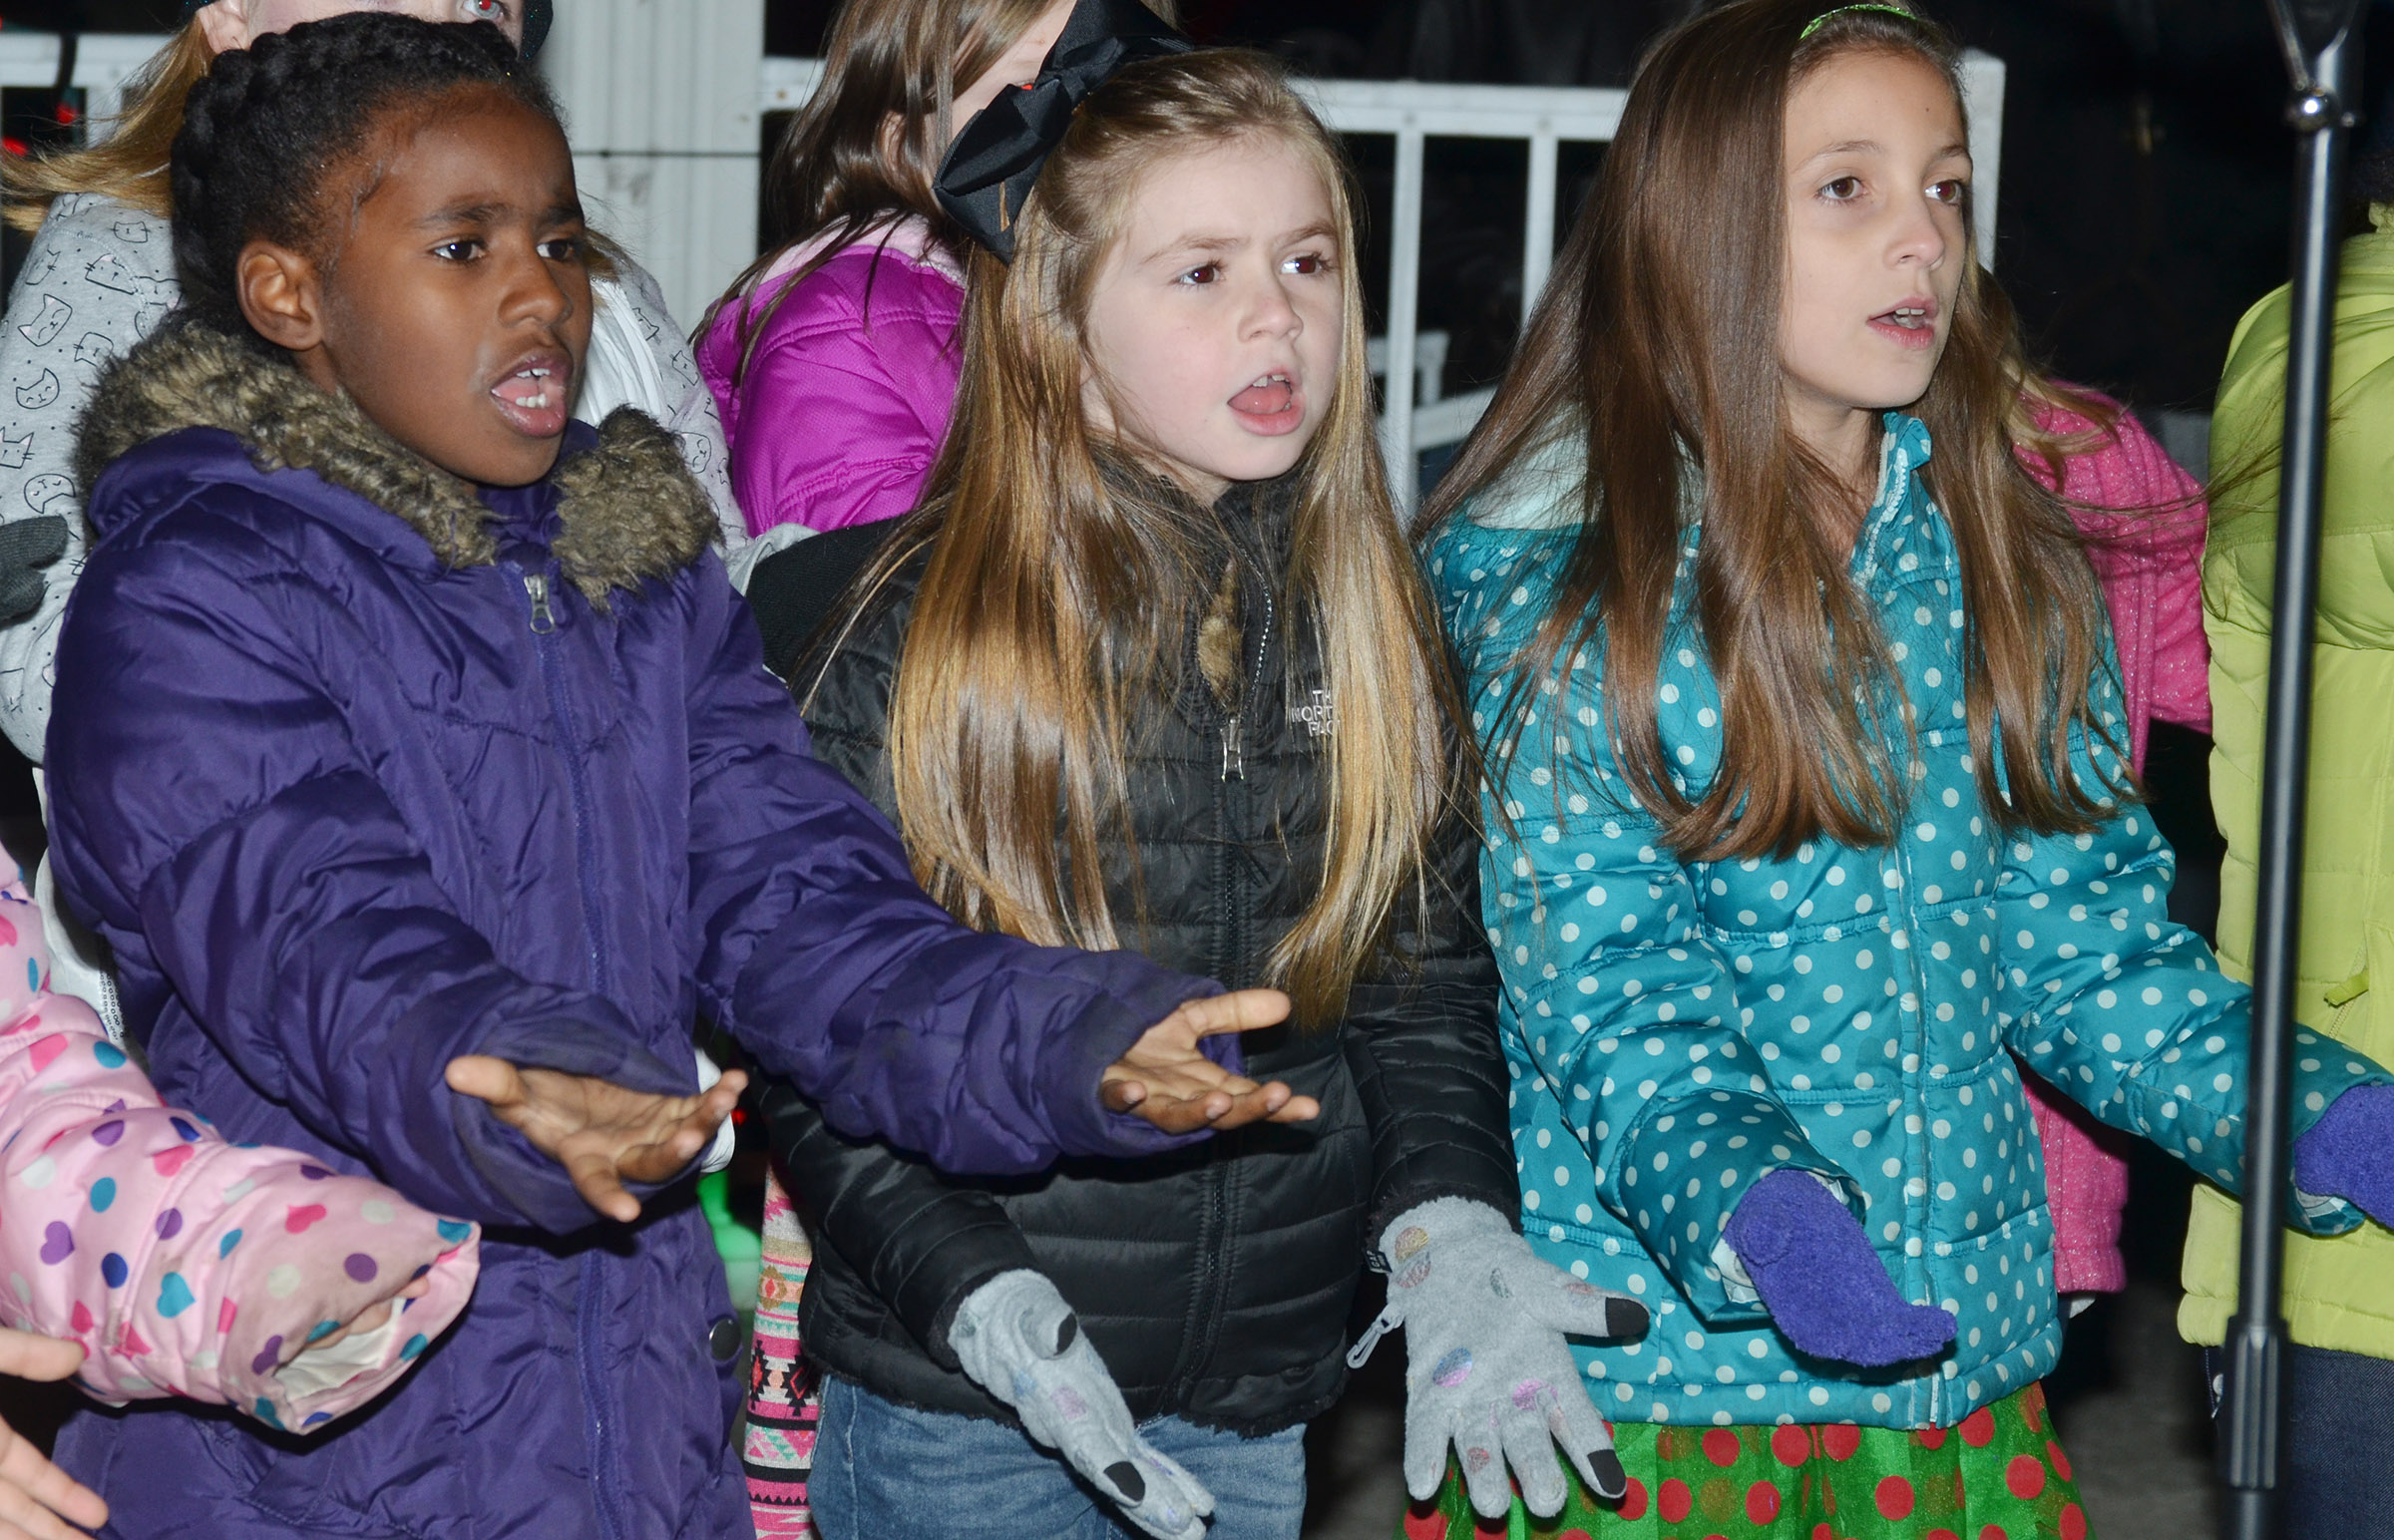 CES second-graders Destini Gholston, Lainey Price and Lillian Martin sing.